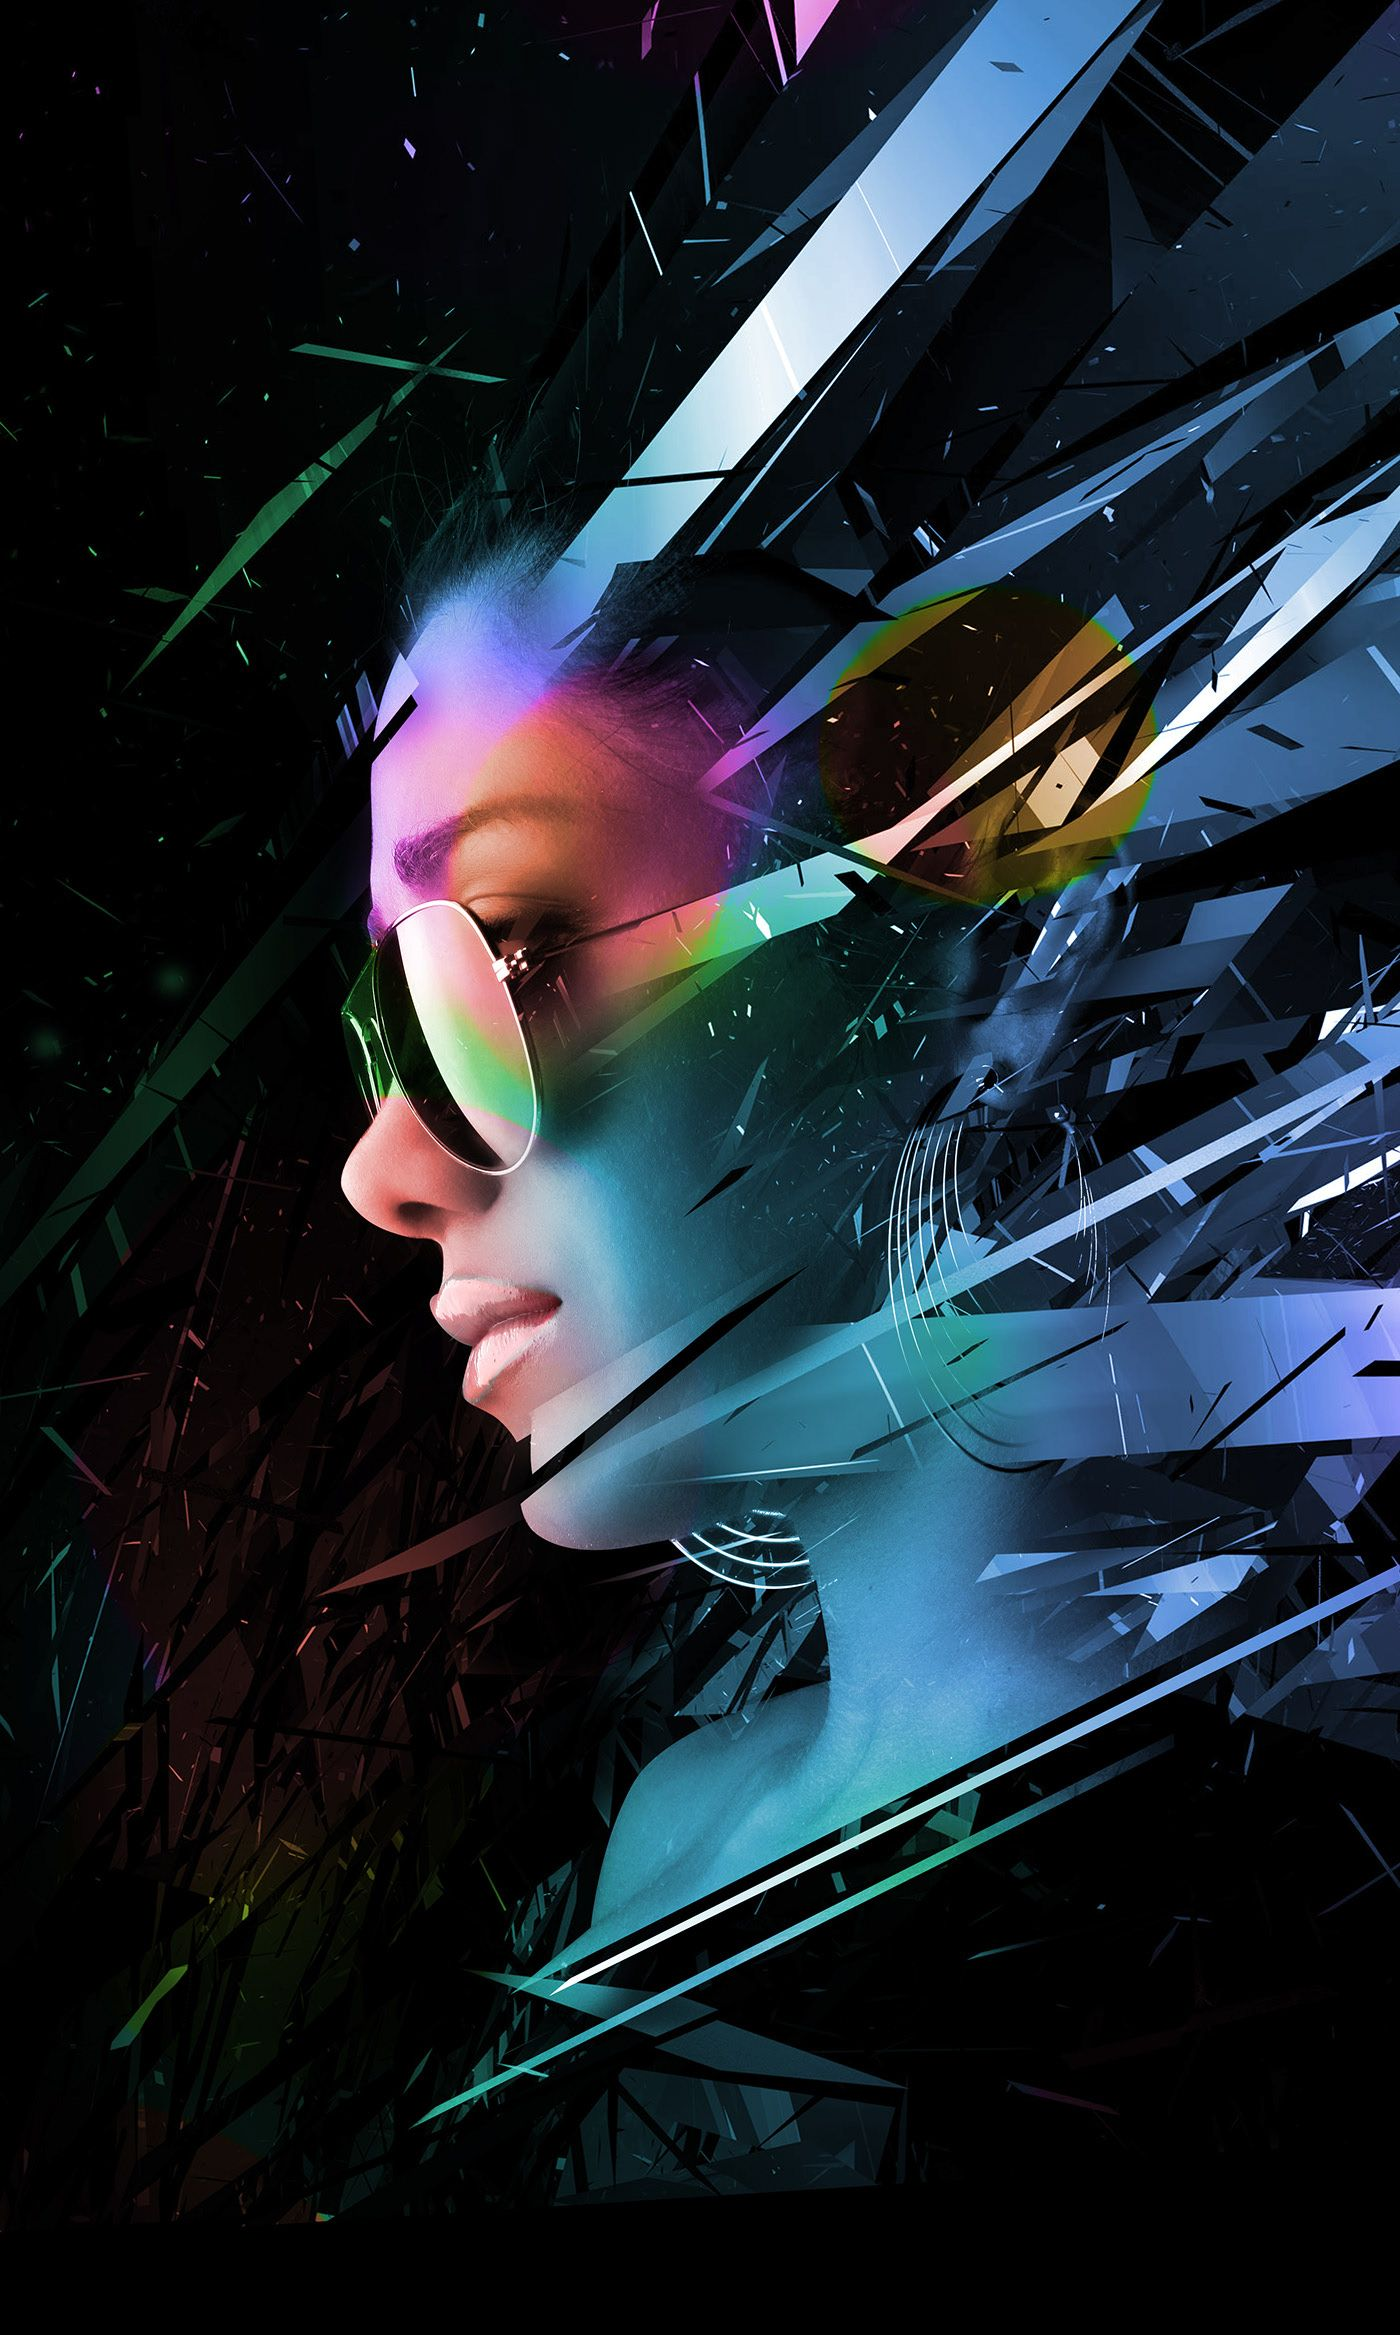 girls abstract 2 + free wallpaper download on Behance in